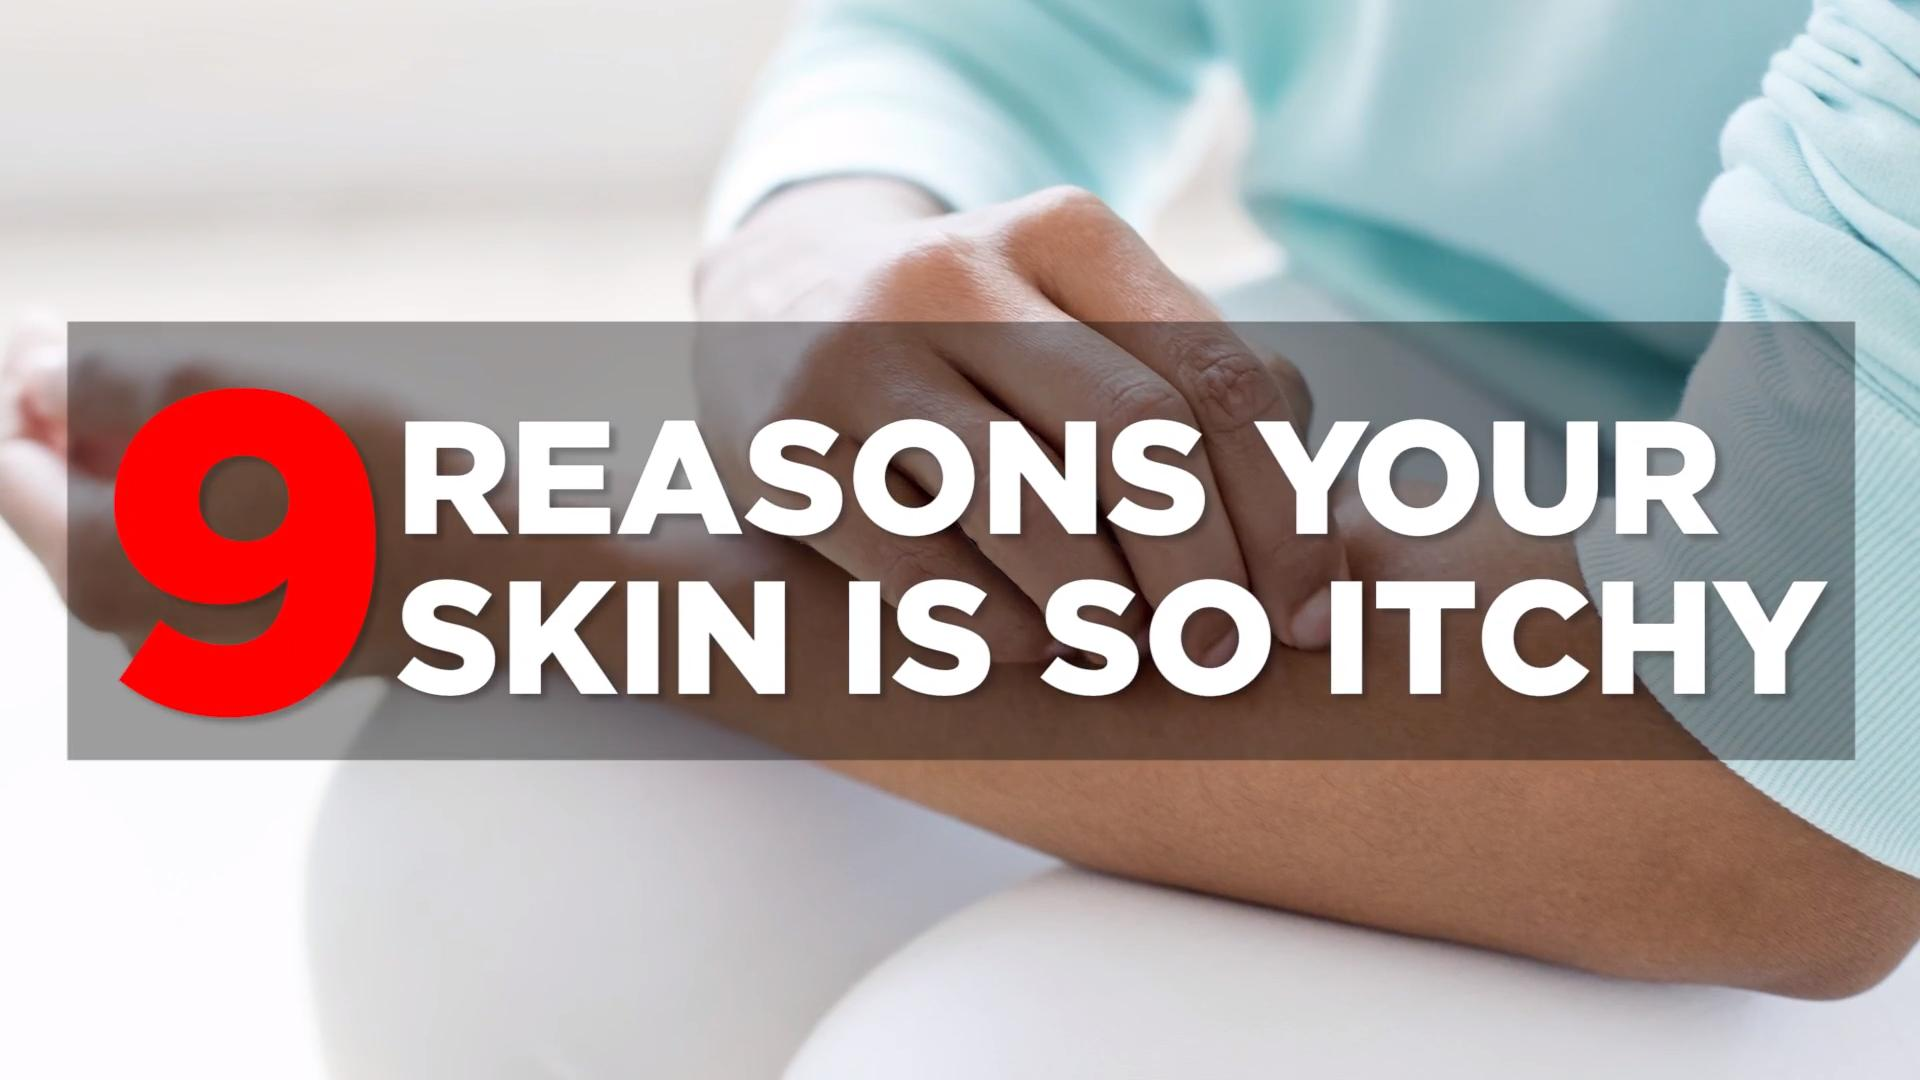 What's causing your itchy skin?